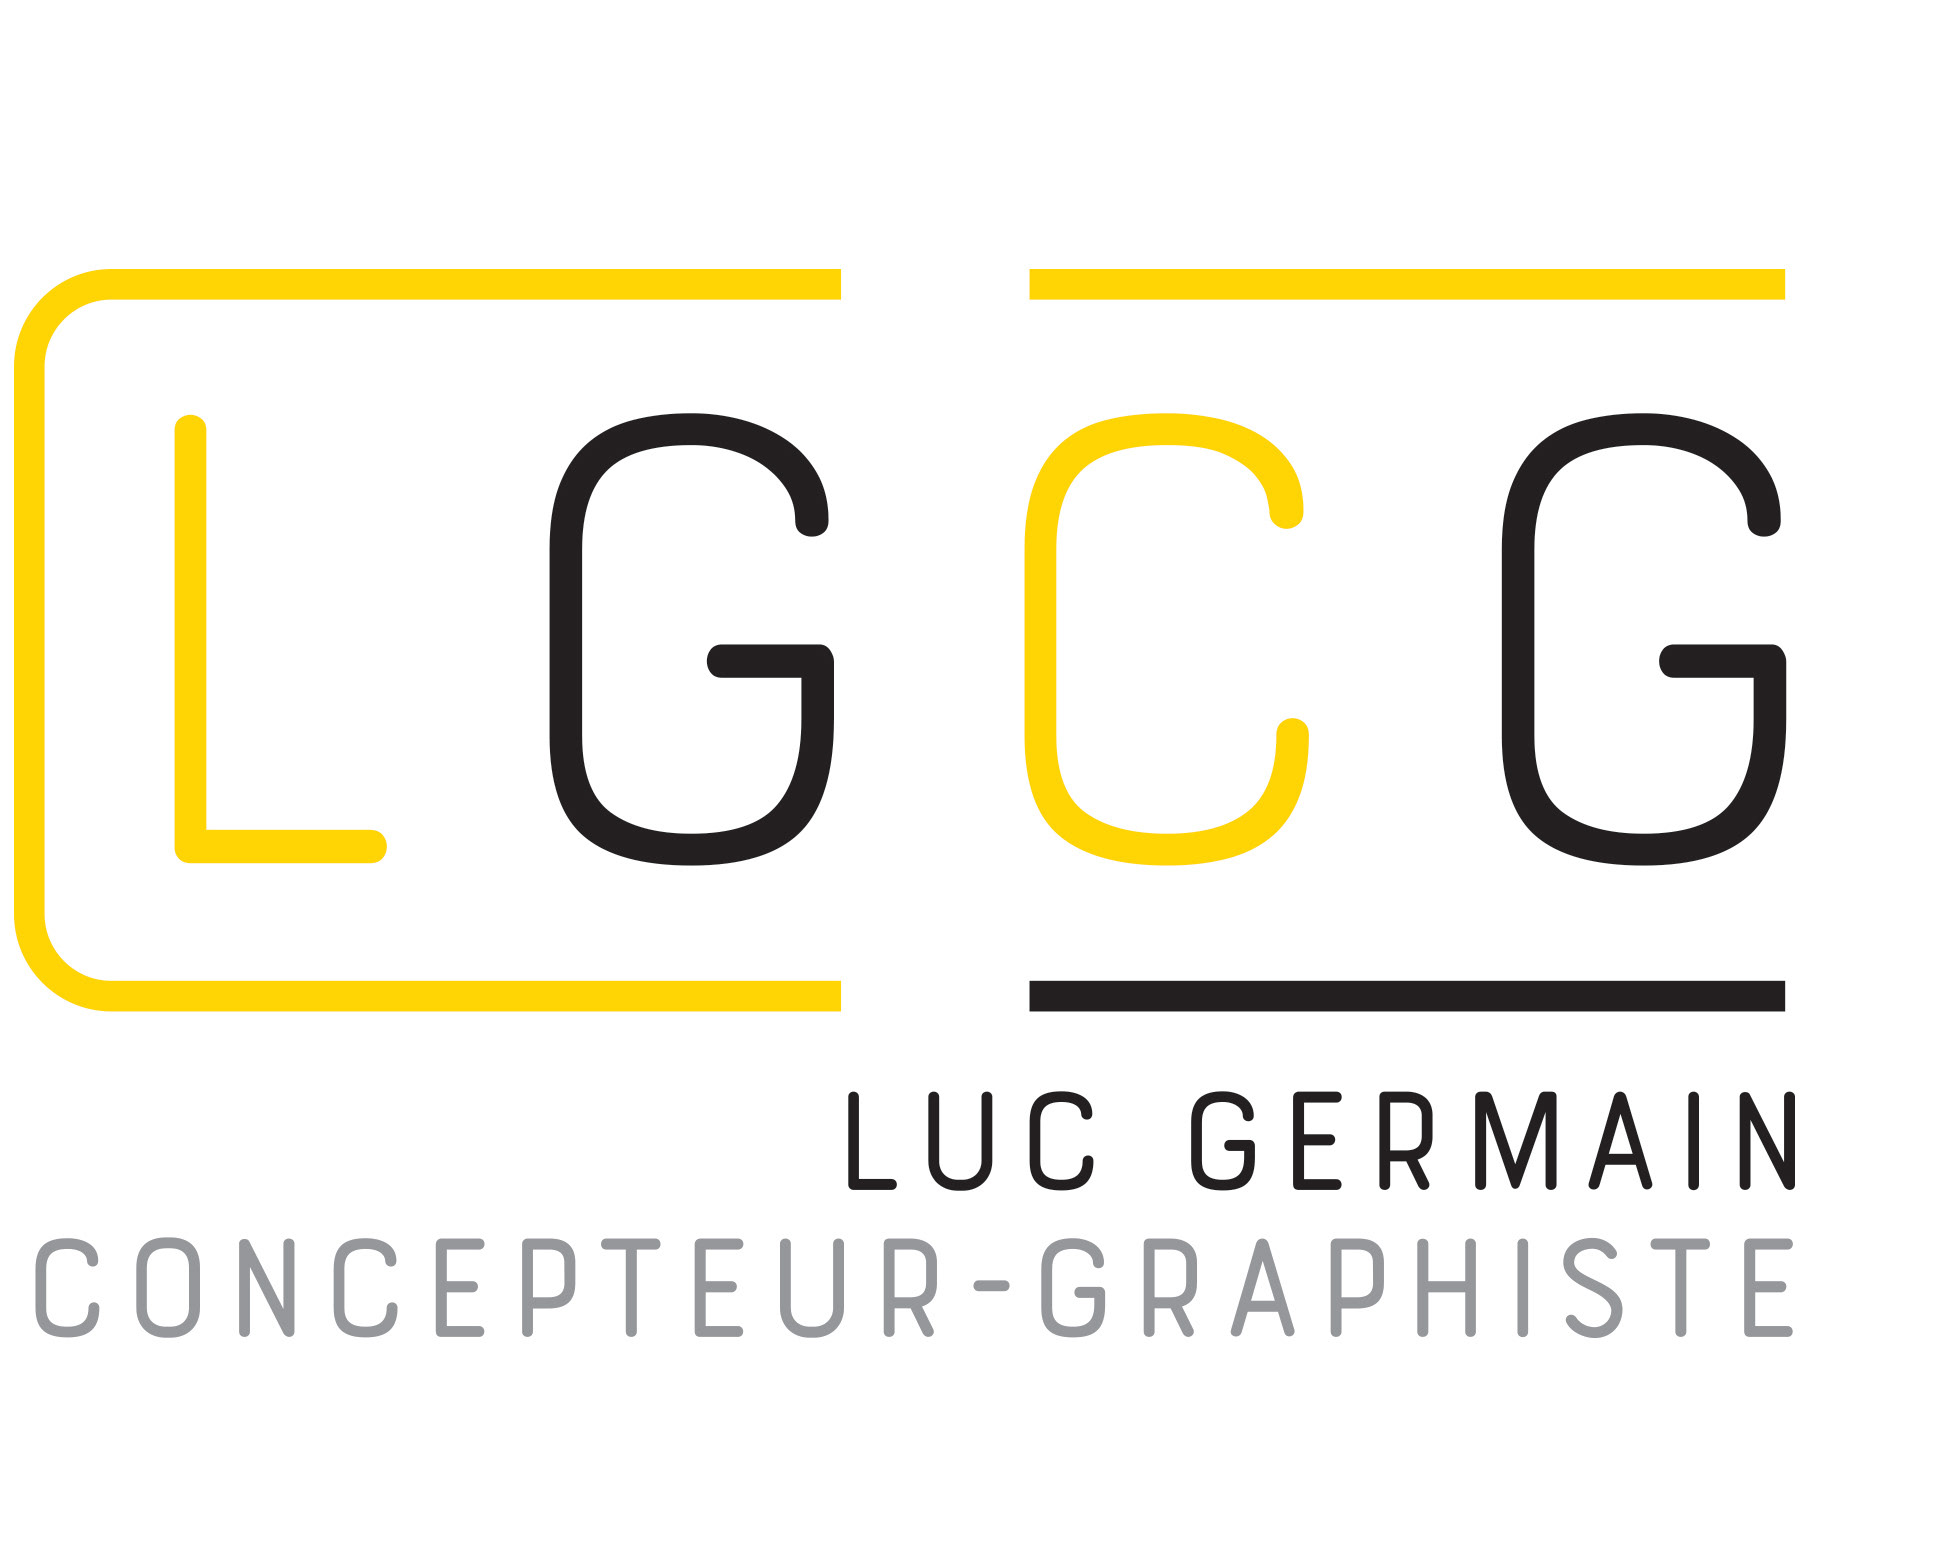 Luc Germain